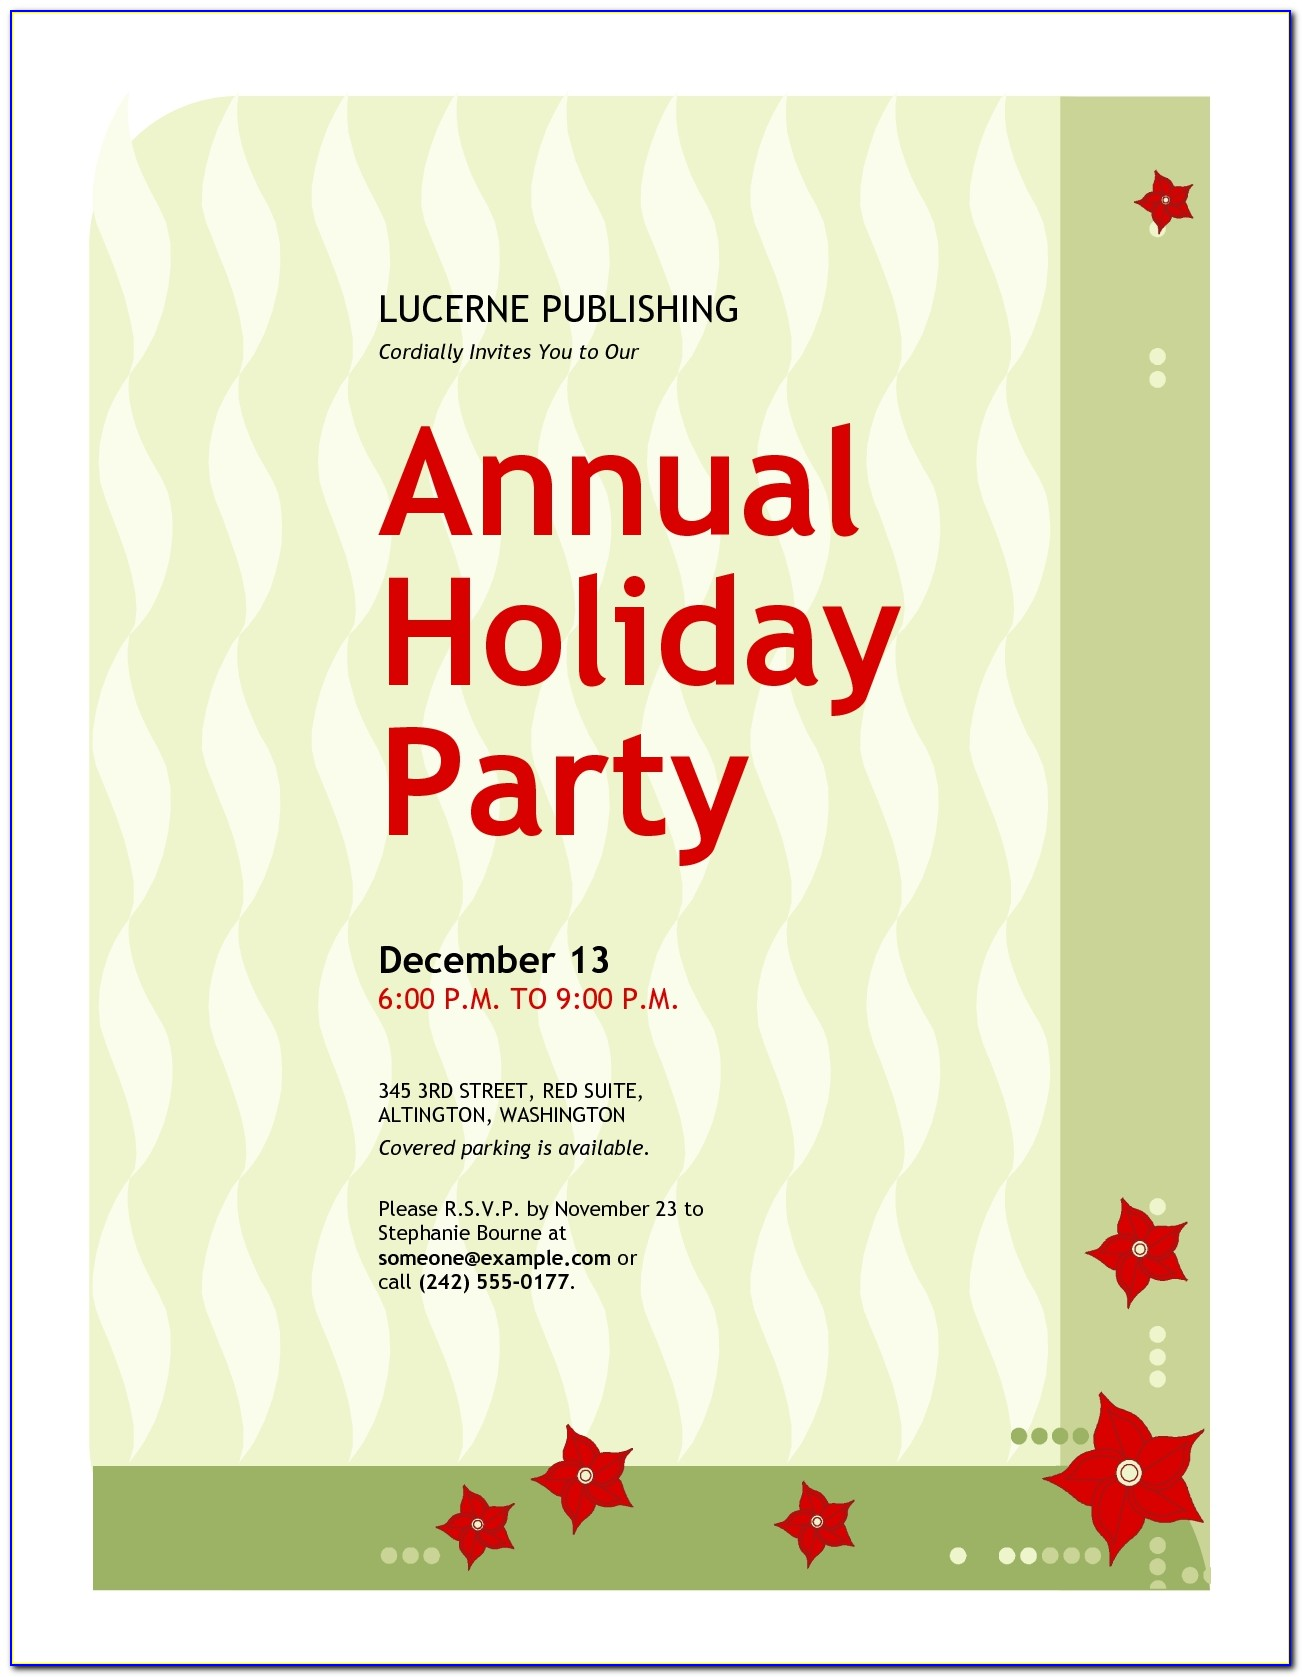 Employee Christmas Party Invitation Wording Rainforest Islands Ferry Pertaining To Employee Christmas Party Invitation Wording